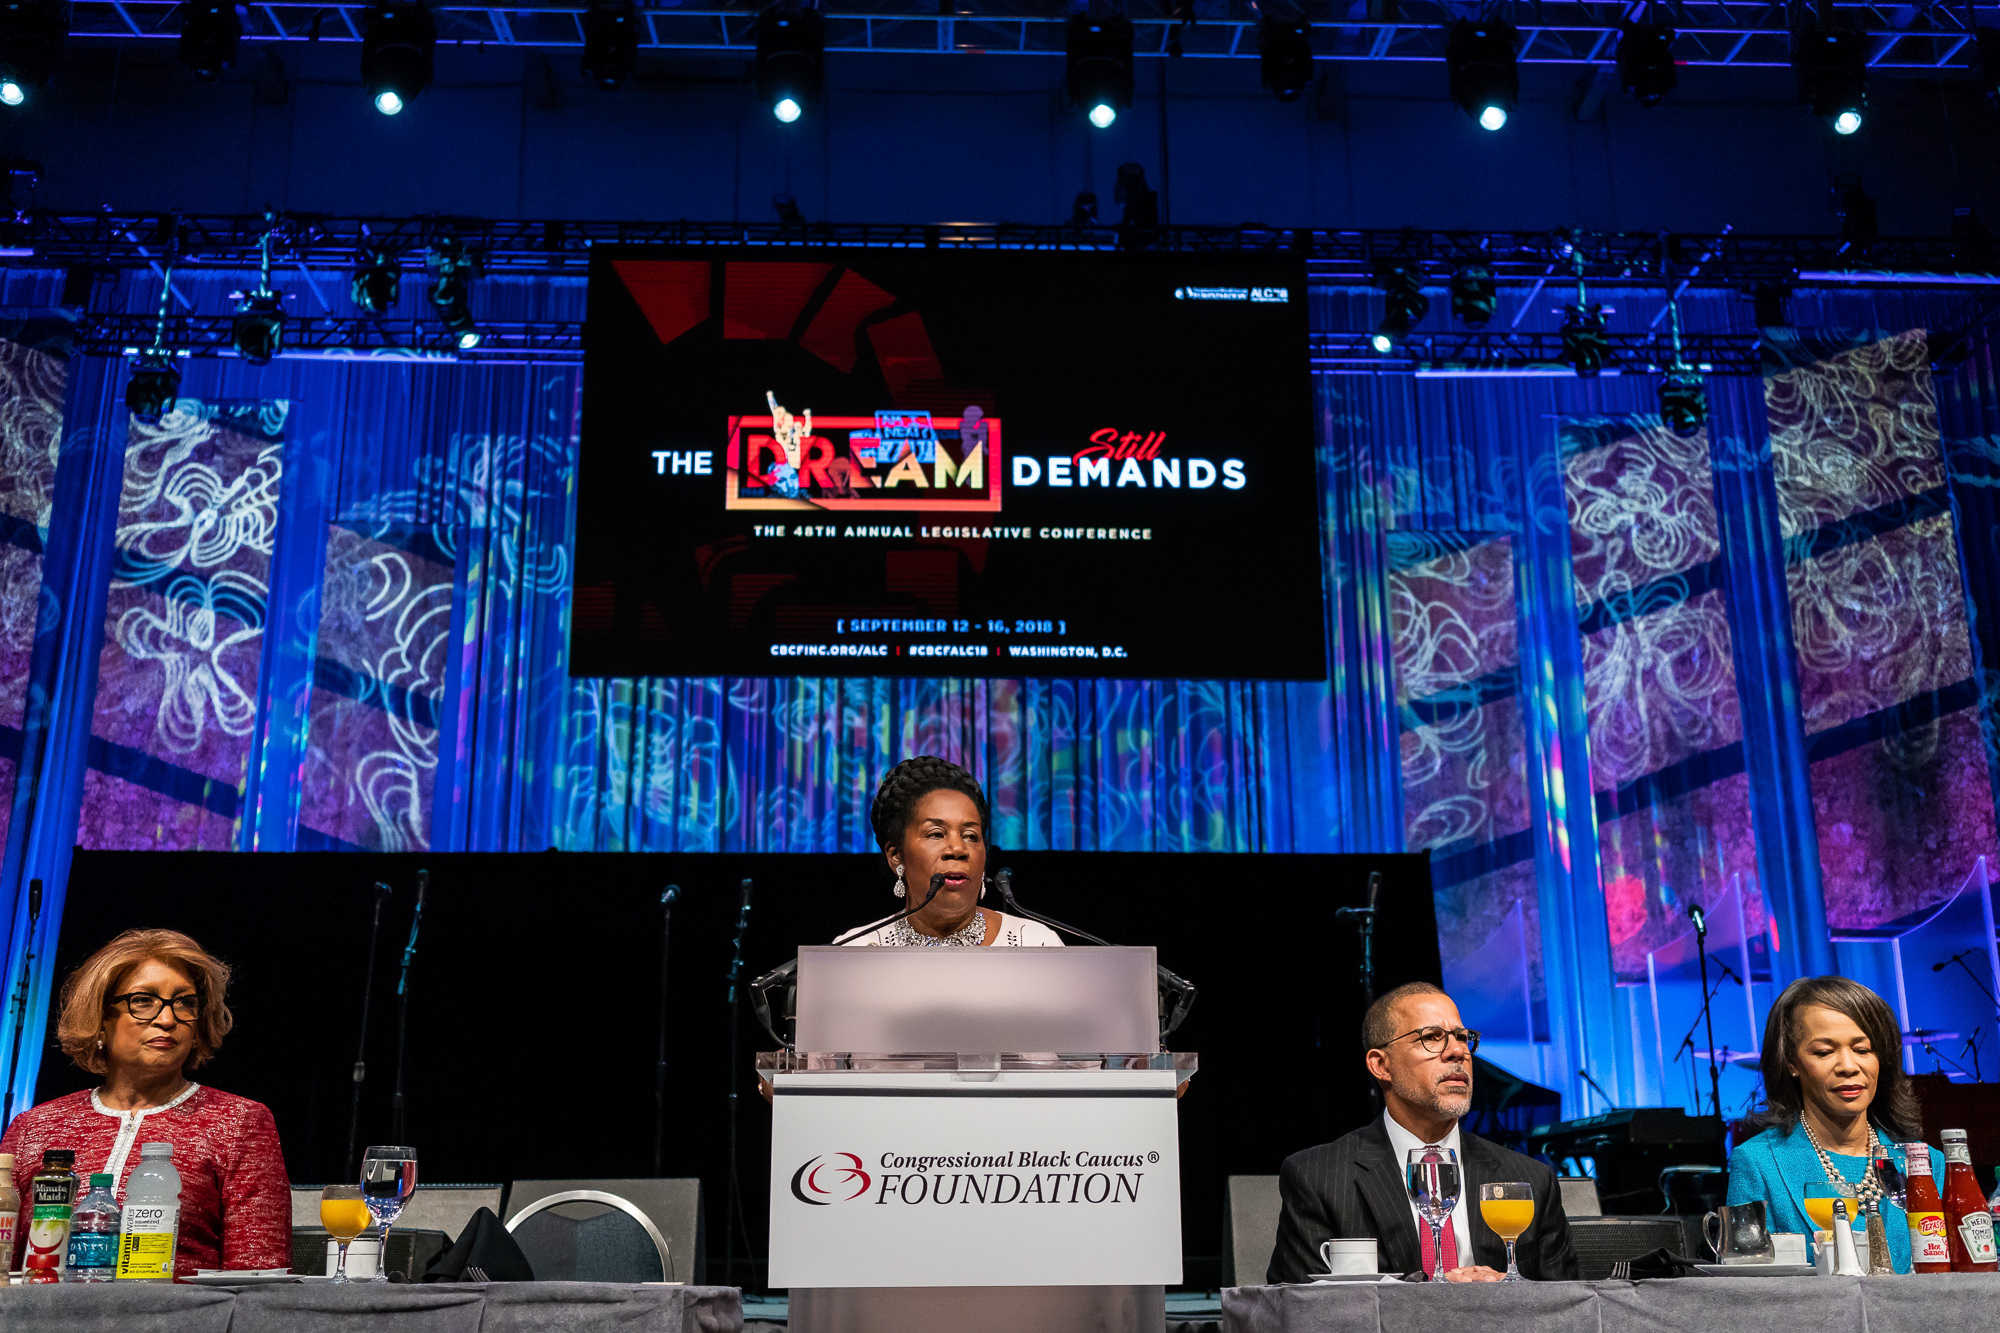 001-Christopher-Jason-Studios-walter-e-washington-convention-center-washington-dc-event-photography-congressional-black-caucus-foundation-annual-legislative-conference-congresswoman-sheila-jackson-lee-speaks-to audience.jpg